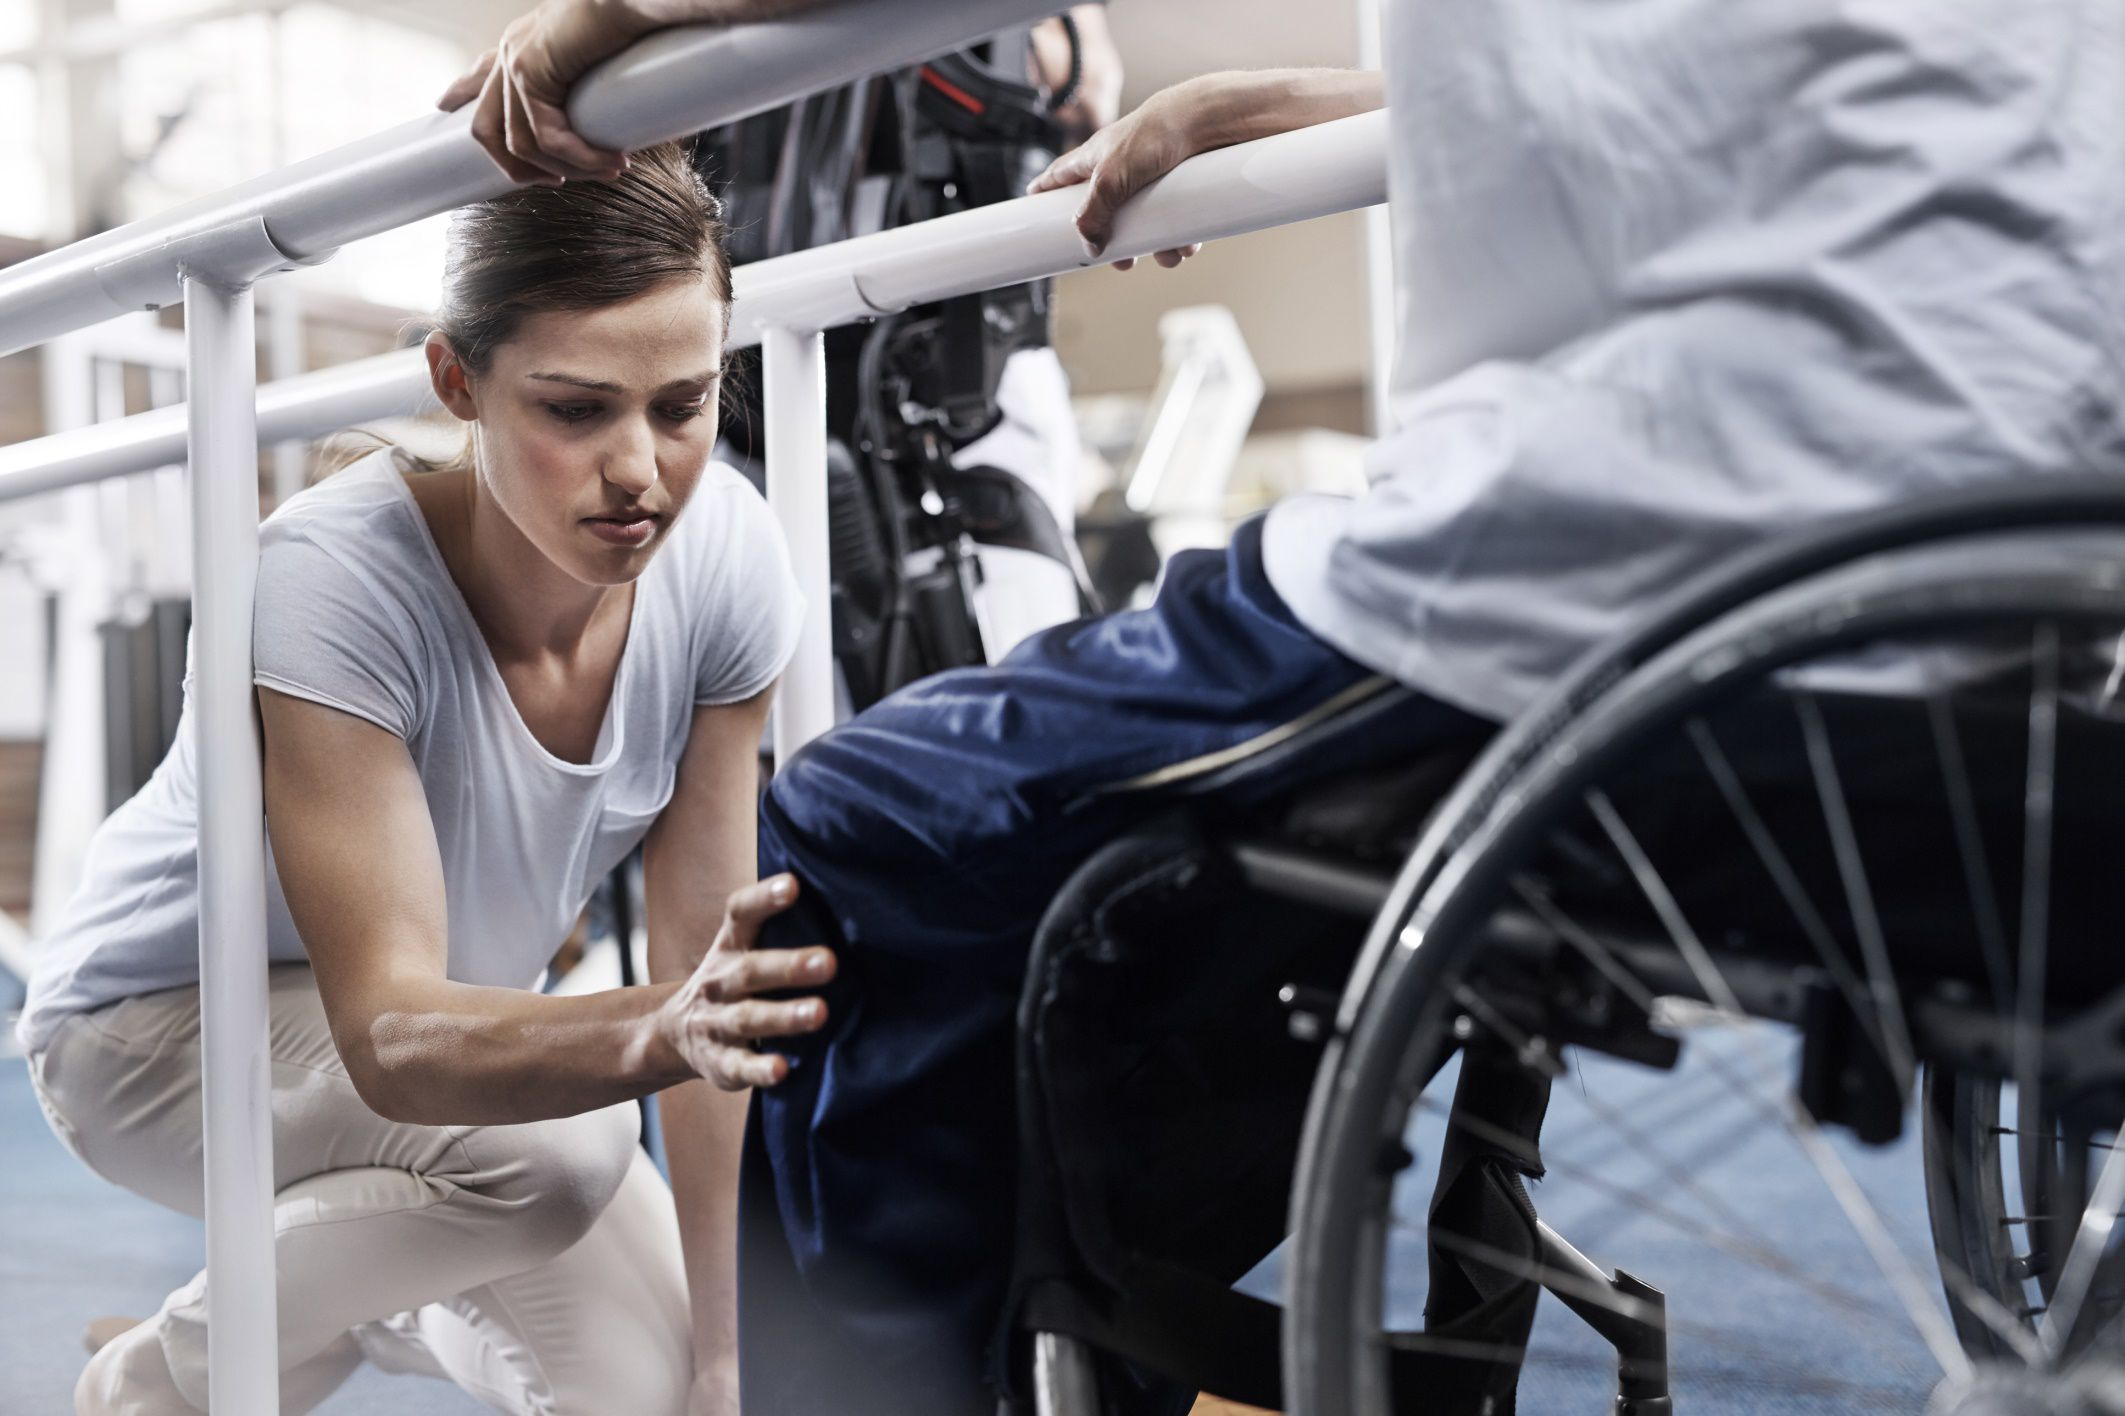 7 Signs That You Should Find A New Physical Therapist